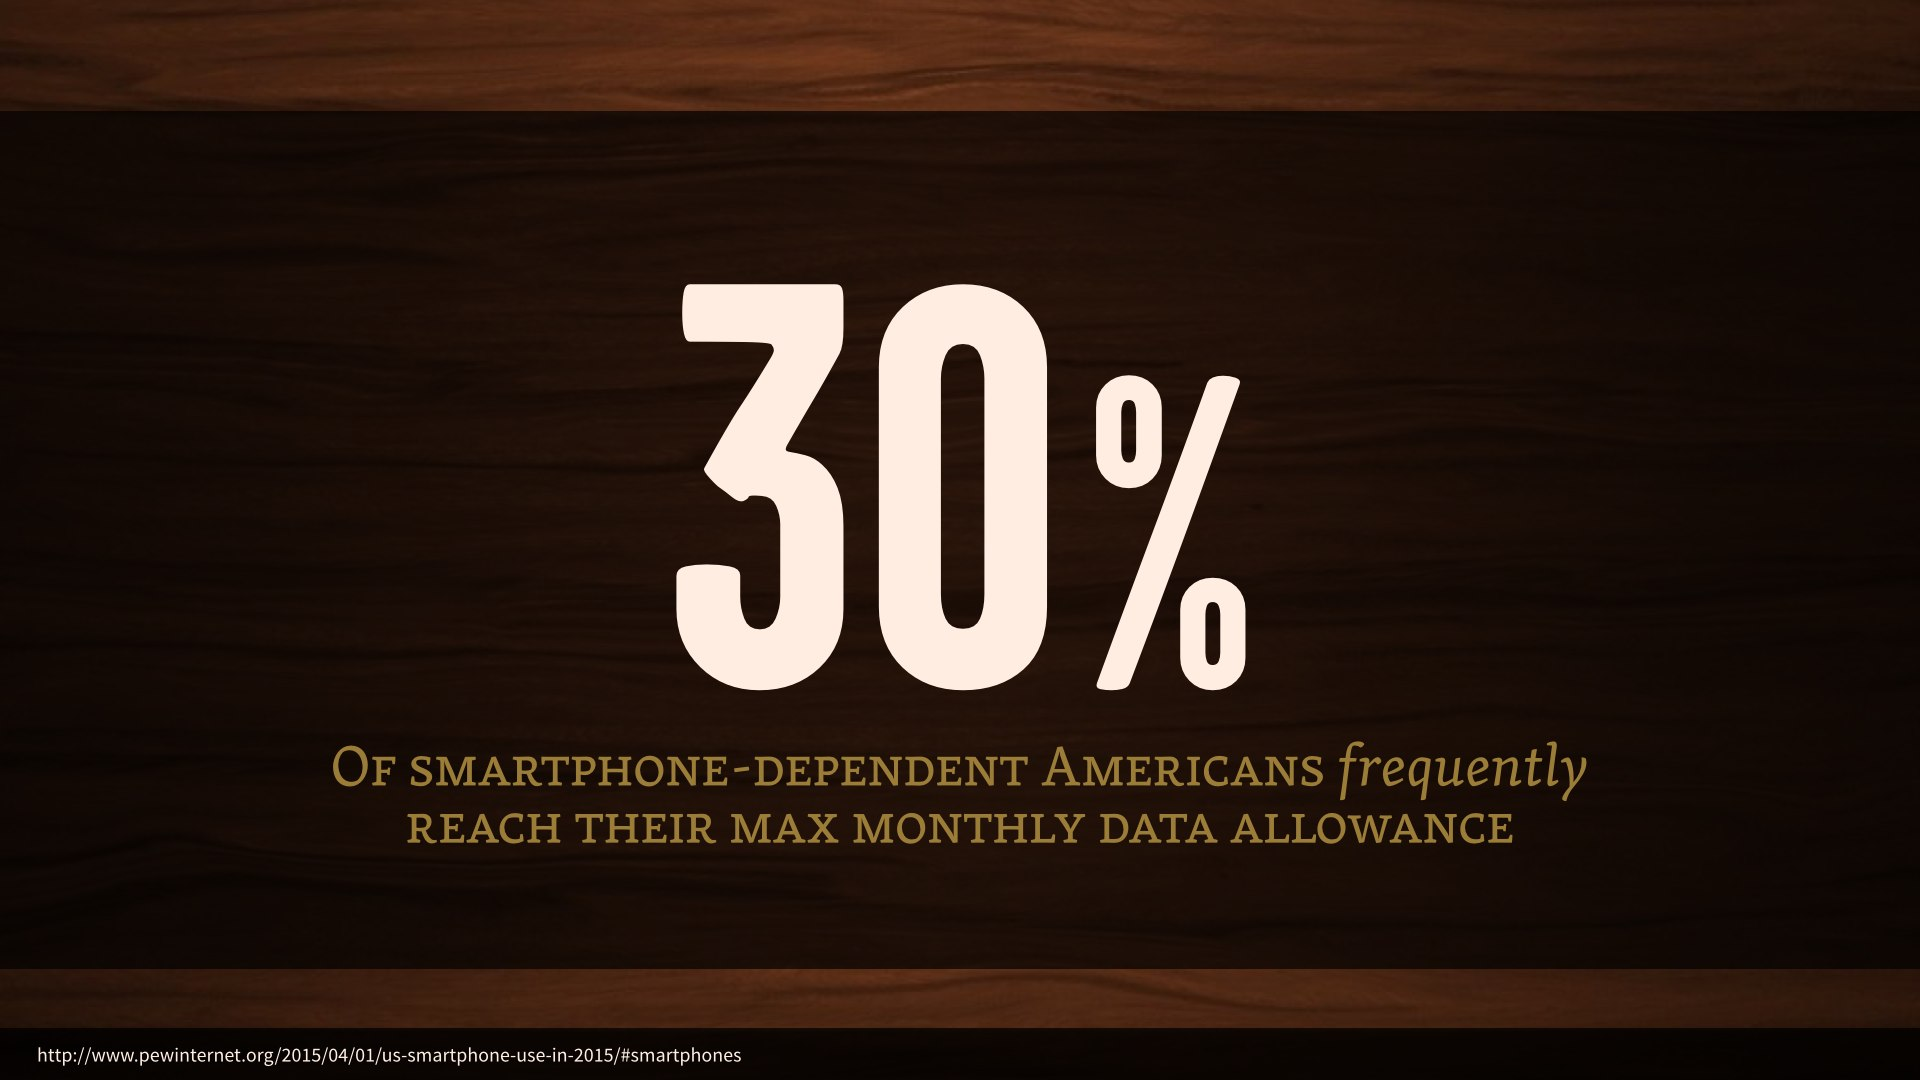 30% of smartphone-dependent Americans frequently reach their max monthly data allowance